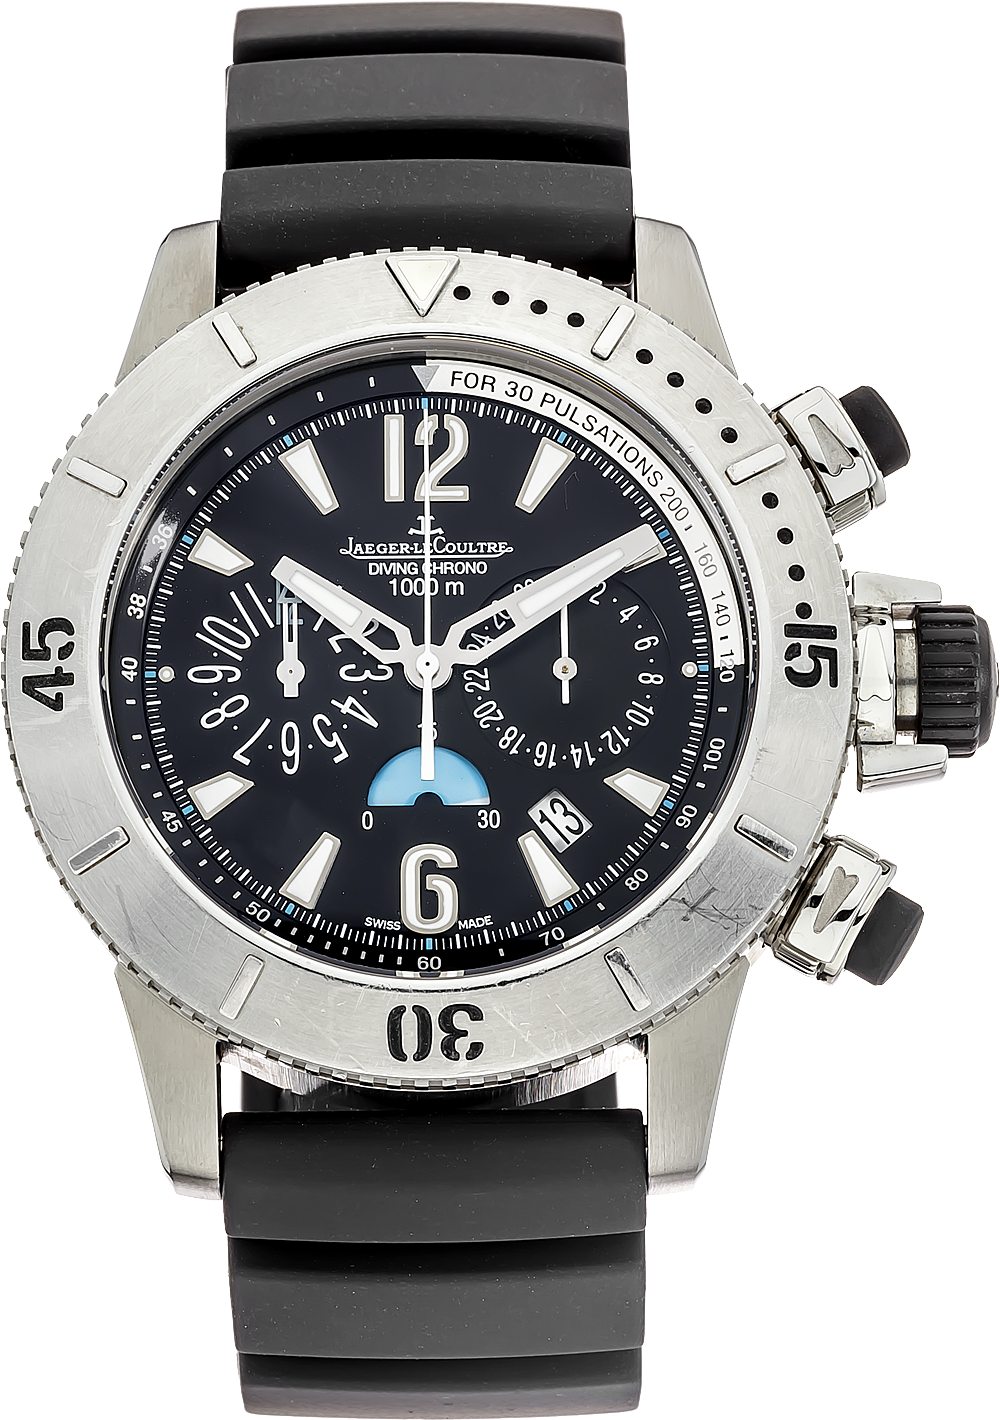 Jaeger-LeCoultre Master Compressor Diving Chronograph 186T670